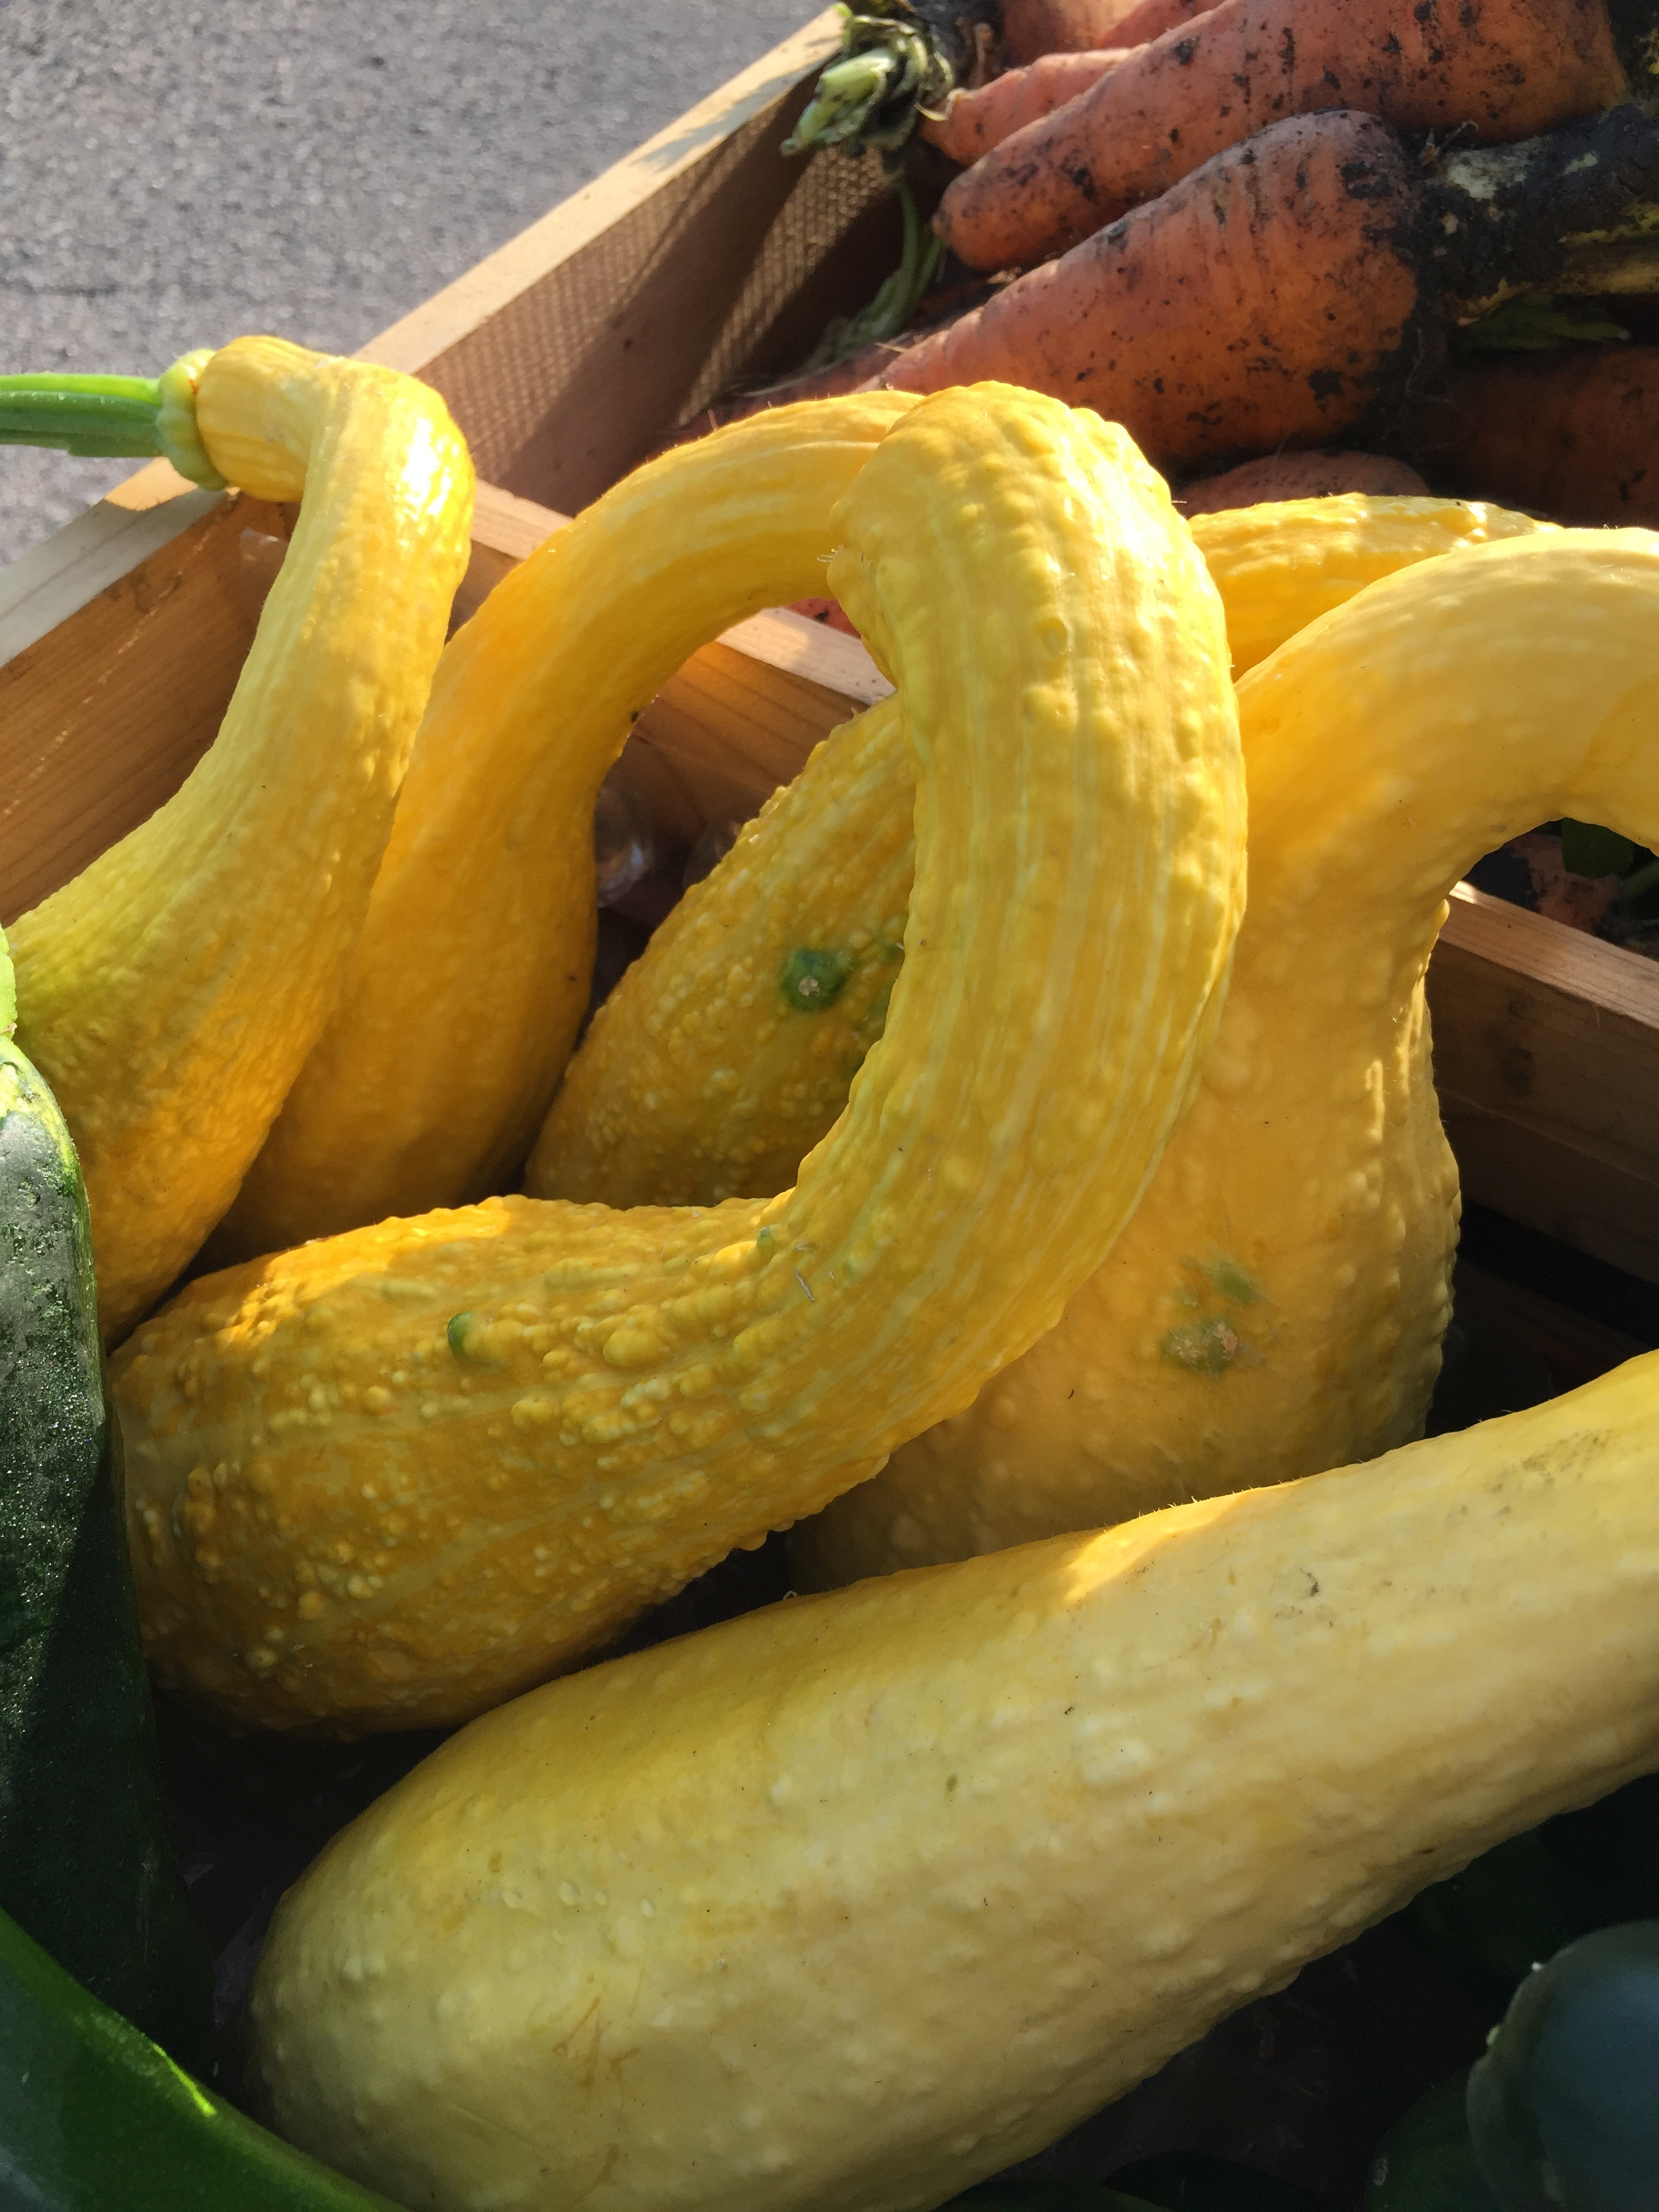 Some yellow crook-neck squash ready for sale.